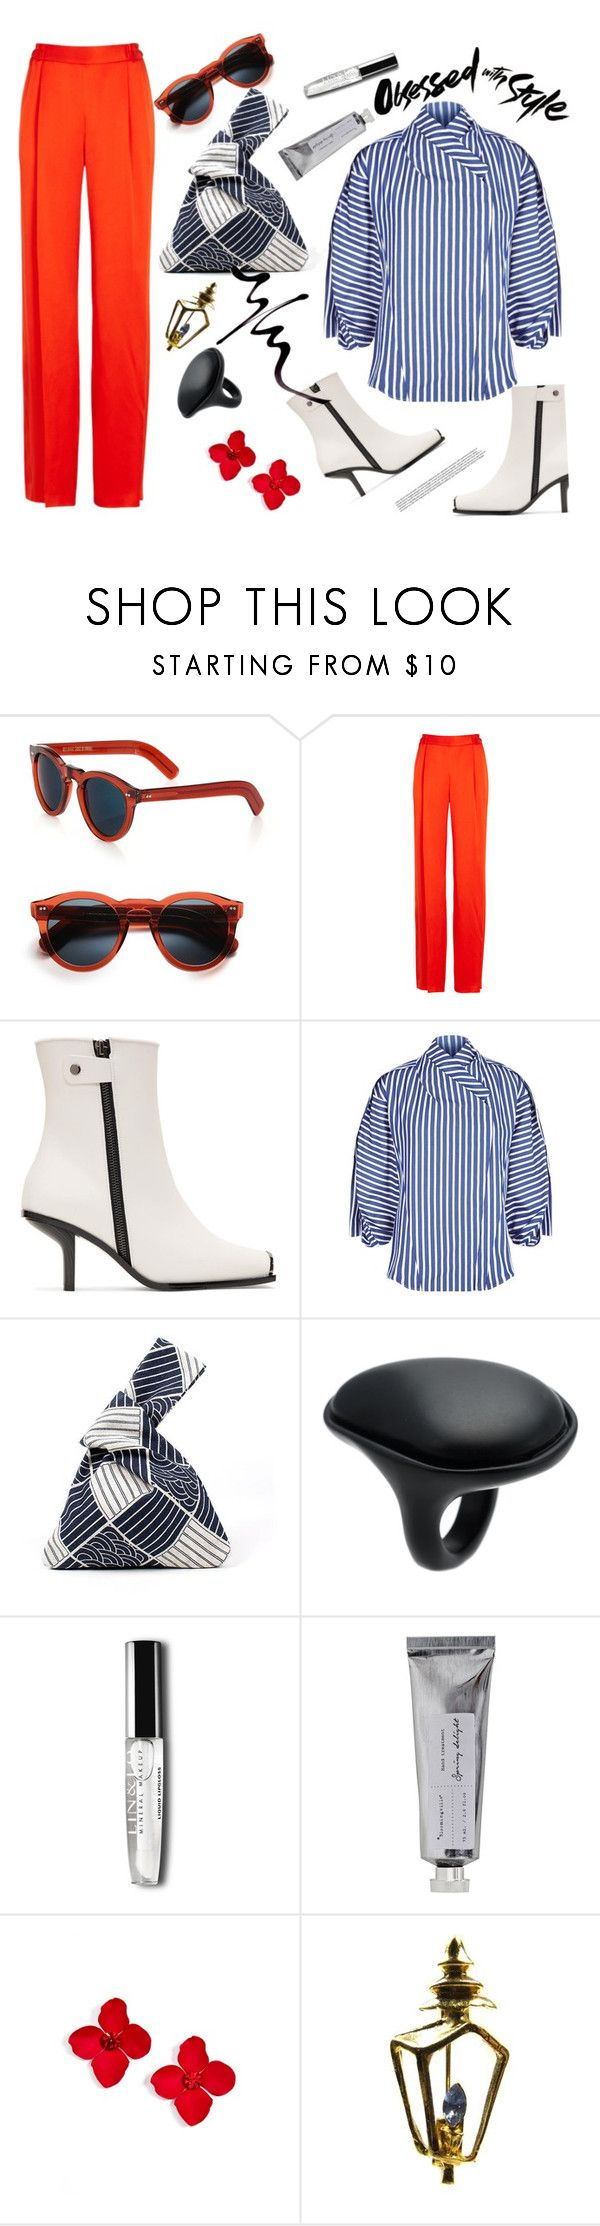 """""""endless options"""" by gabrielleleroy ❤ liked on Polyvore featuring Cutler and Gross, STELLA McCARTNEY, A.W.A.K.E., Uma 